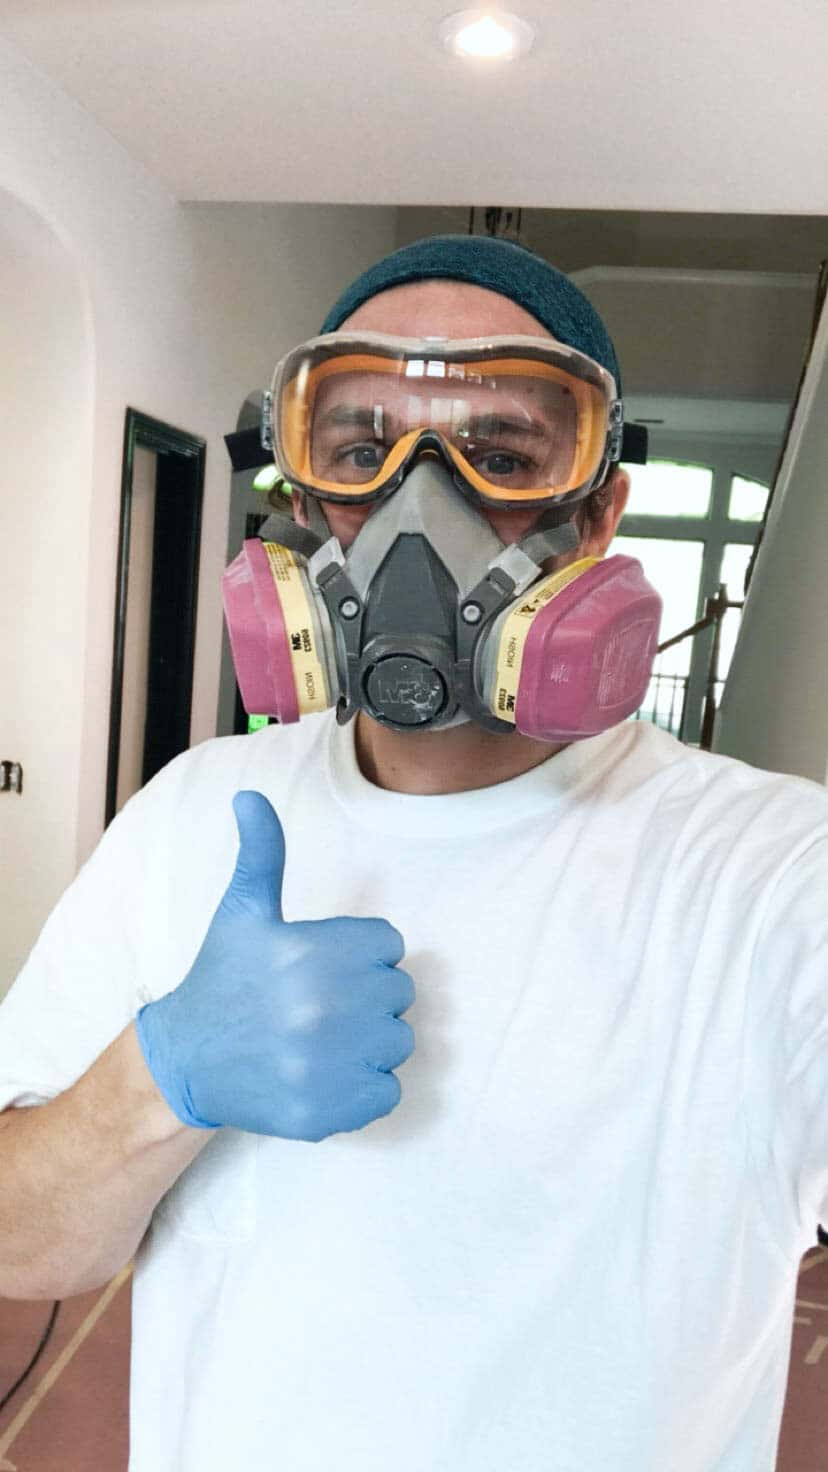 6 Things To Know Before Starting DIY House Renovations